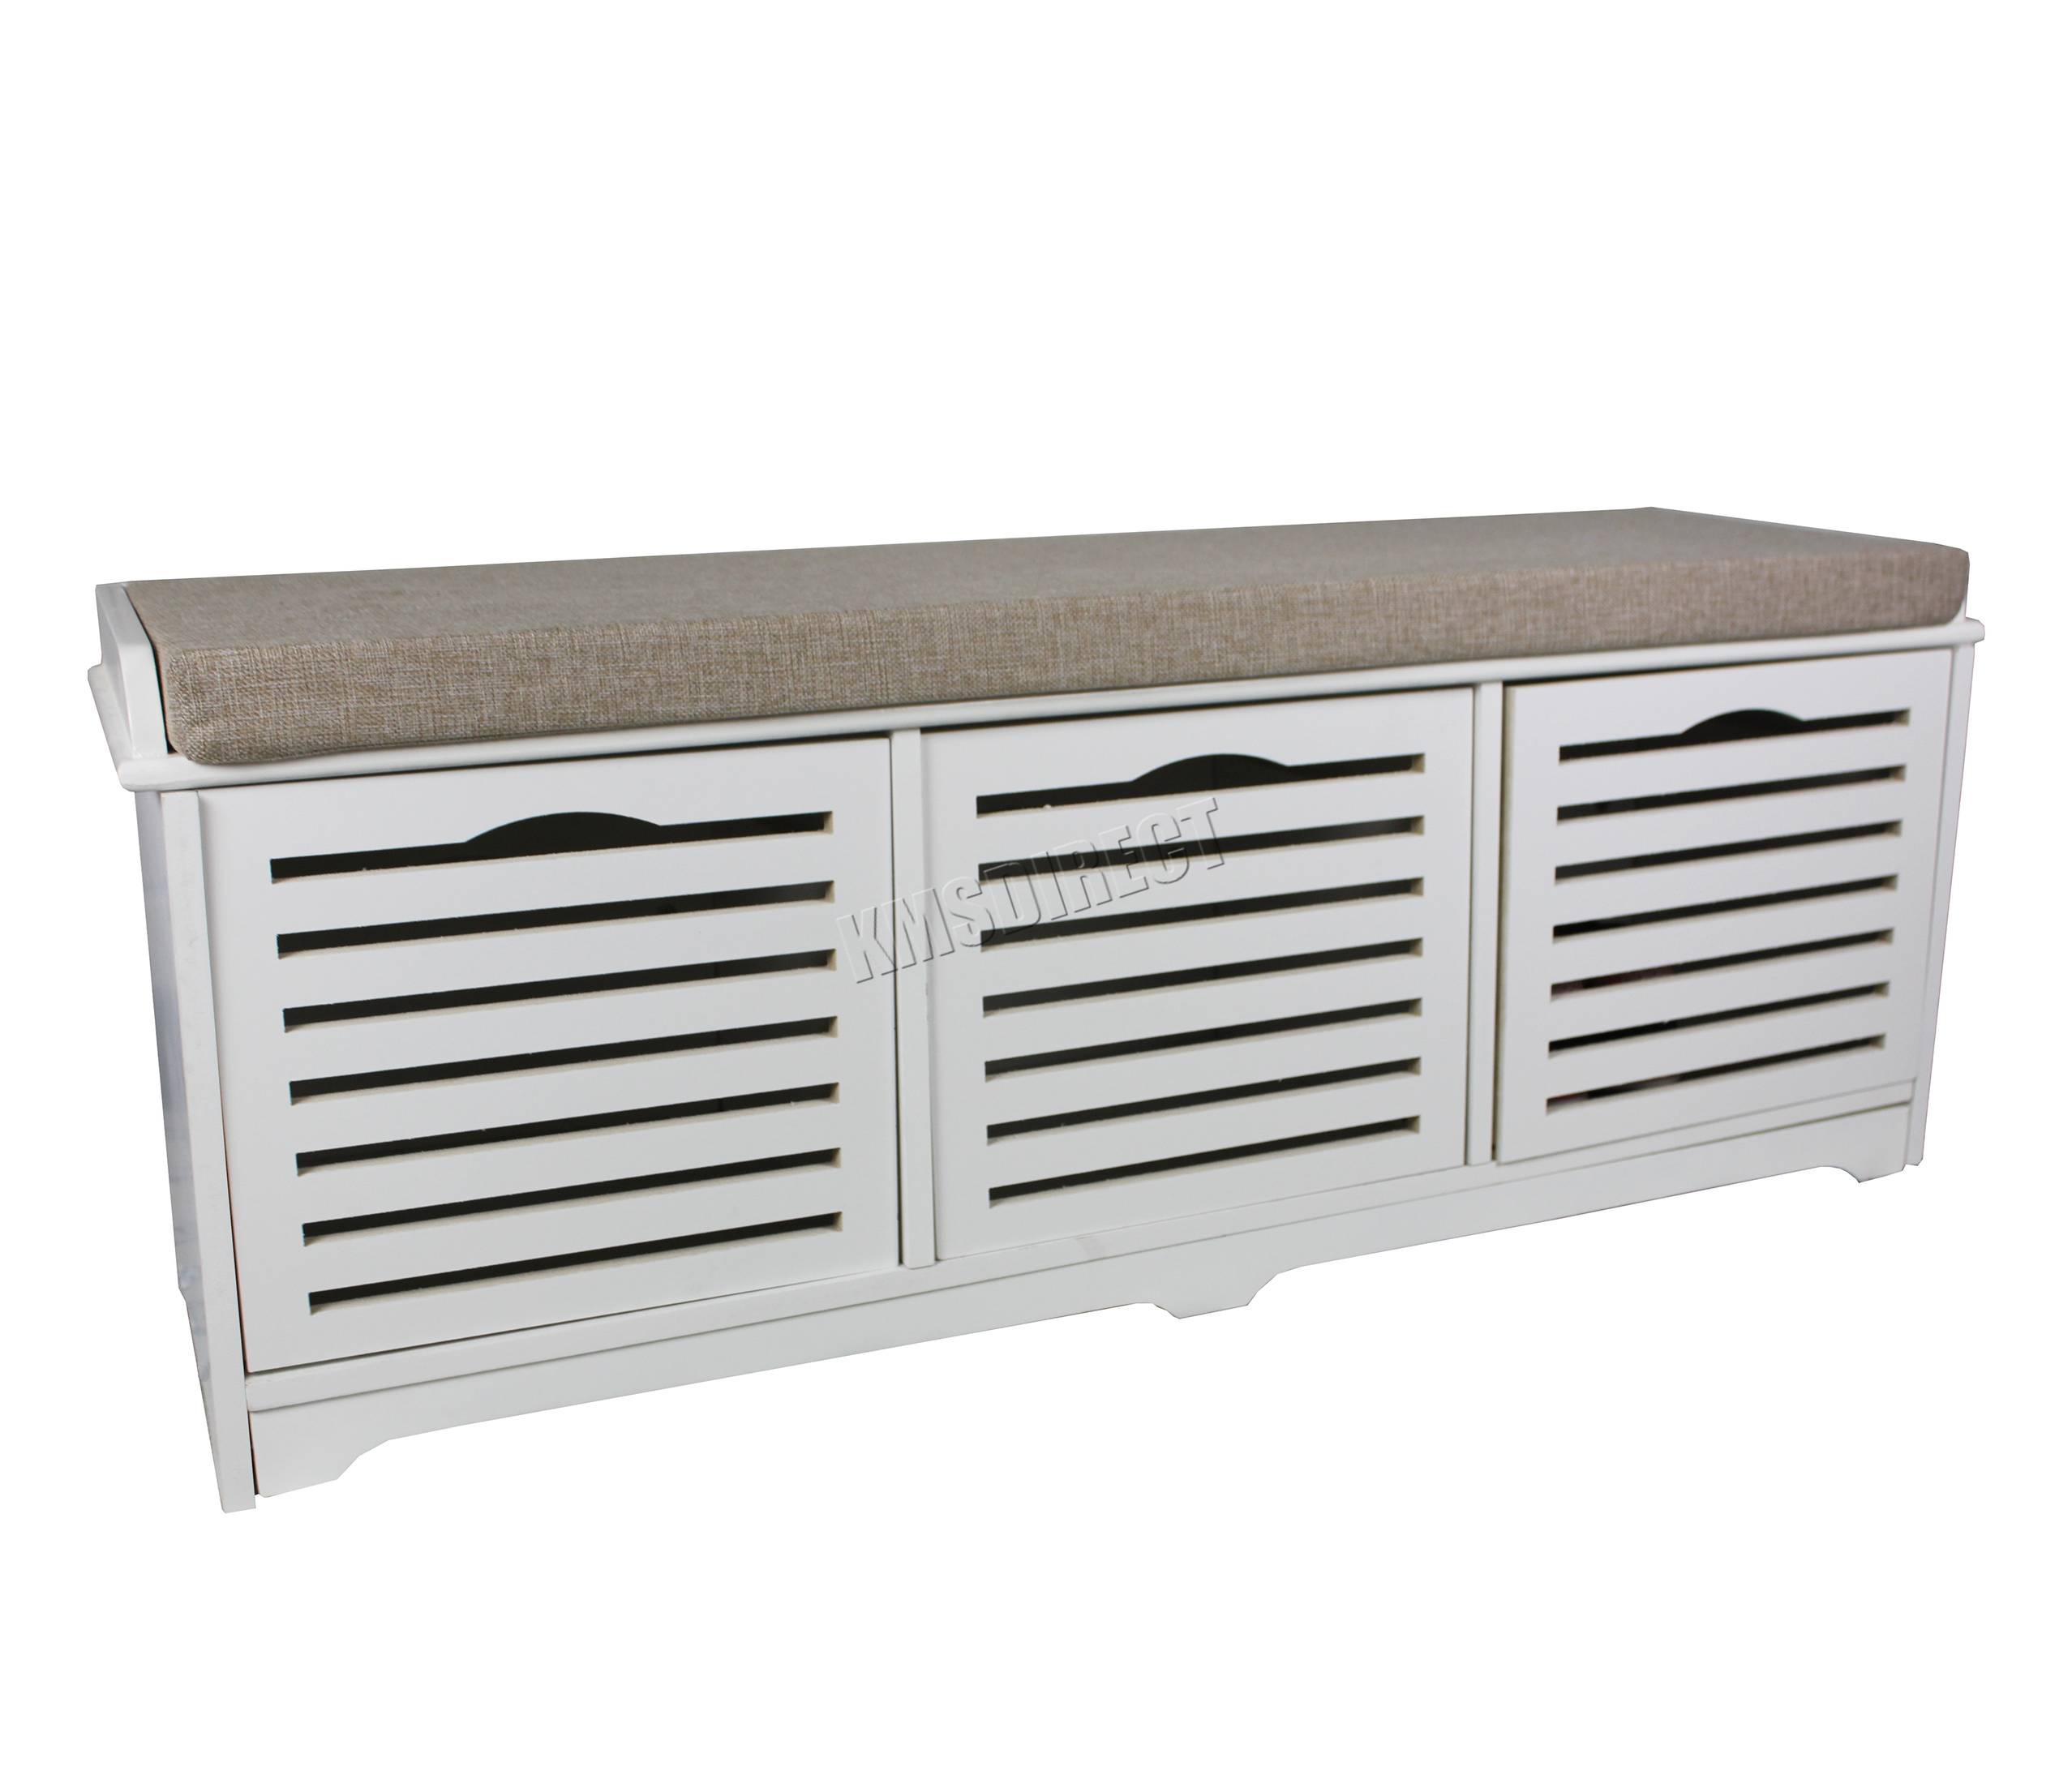 Foxhunter shoe storage bench with drawers padded seat stool cabinet mdf white ebay Shoe cabinet bench